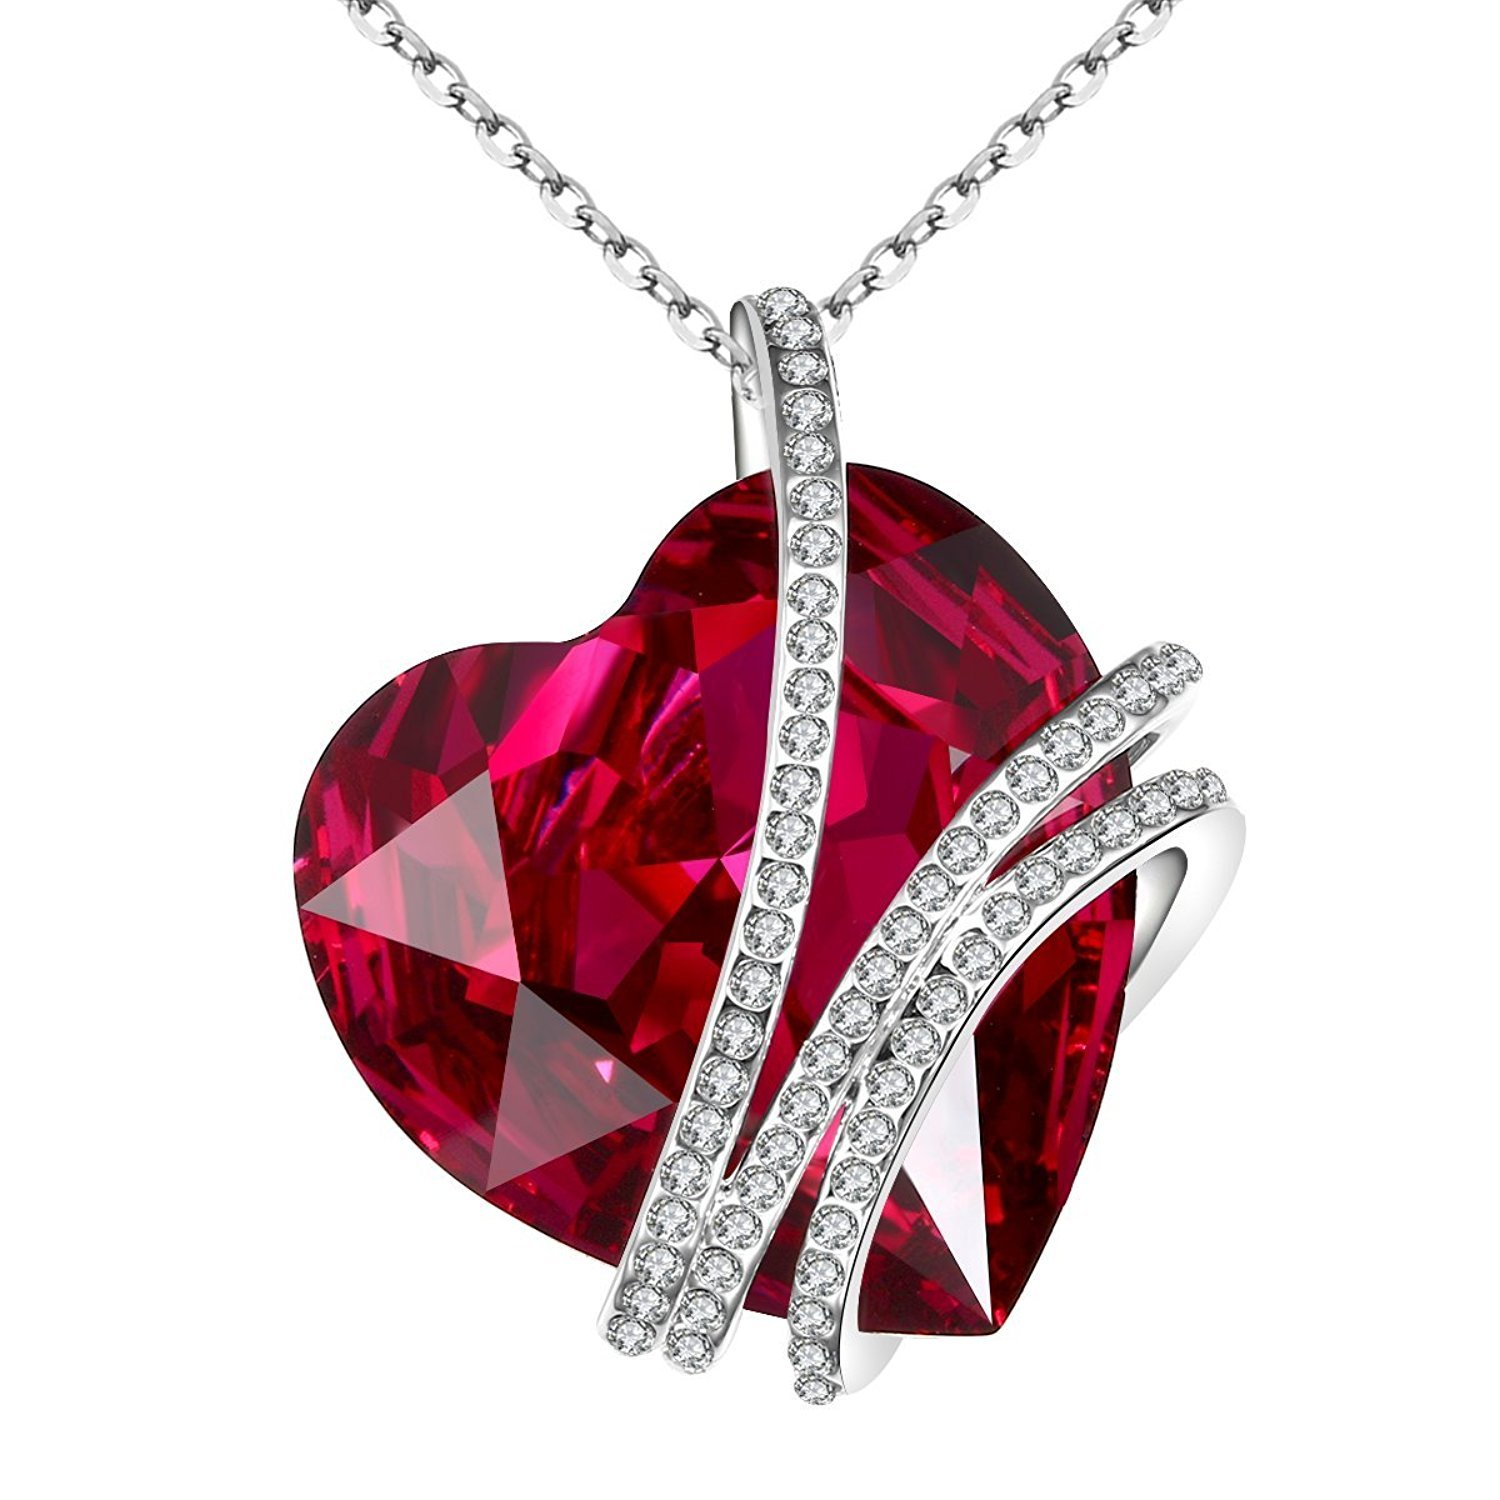 Carfeny Big Heart Red Swarovski Crystal Necklace Pendant Women With Chain